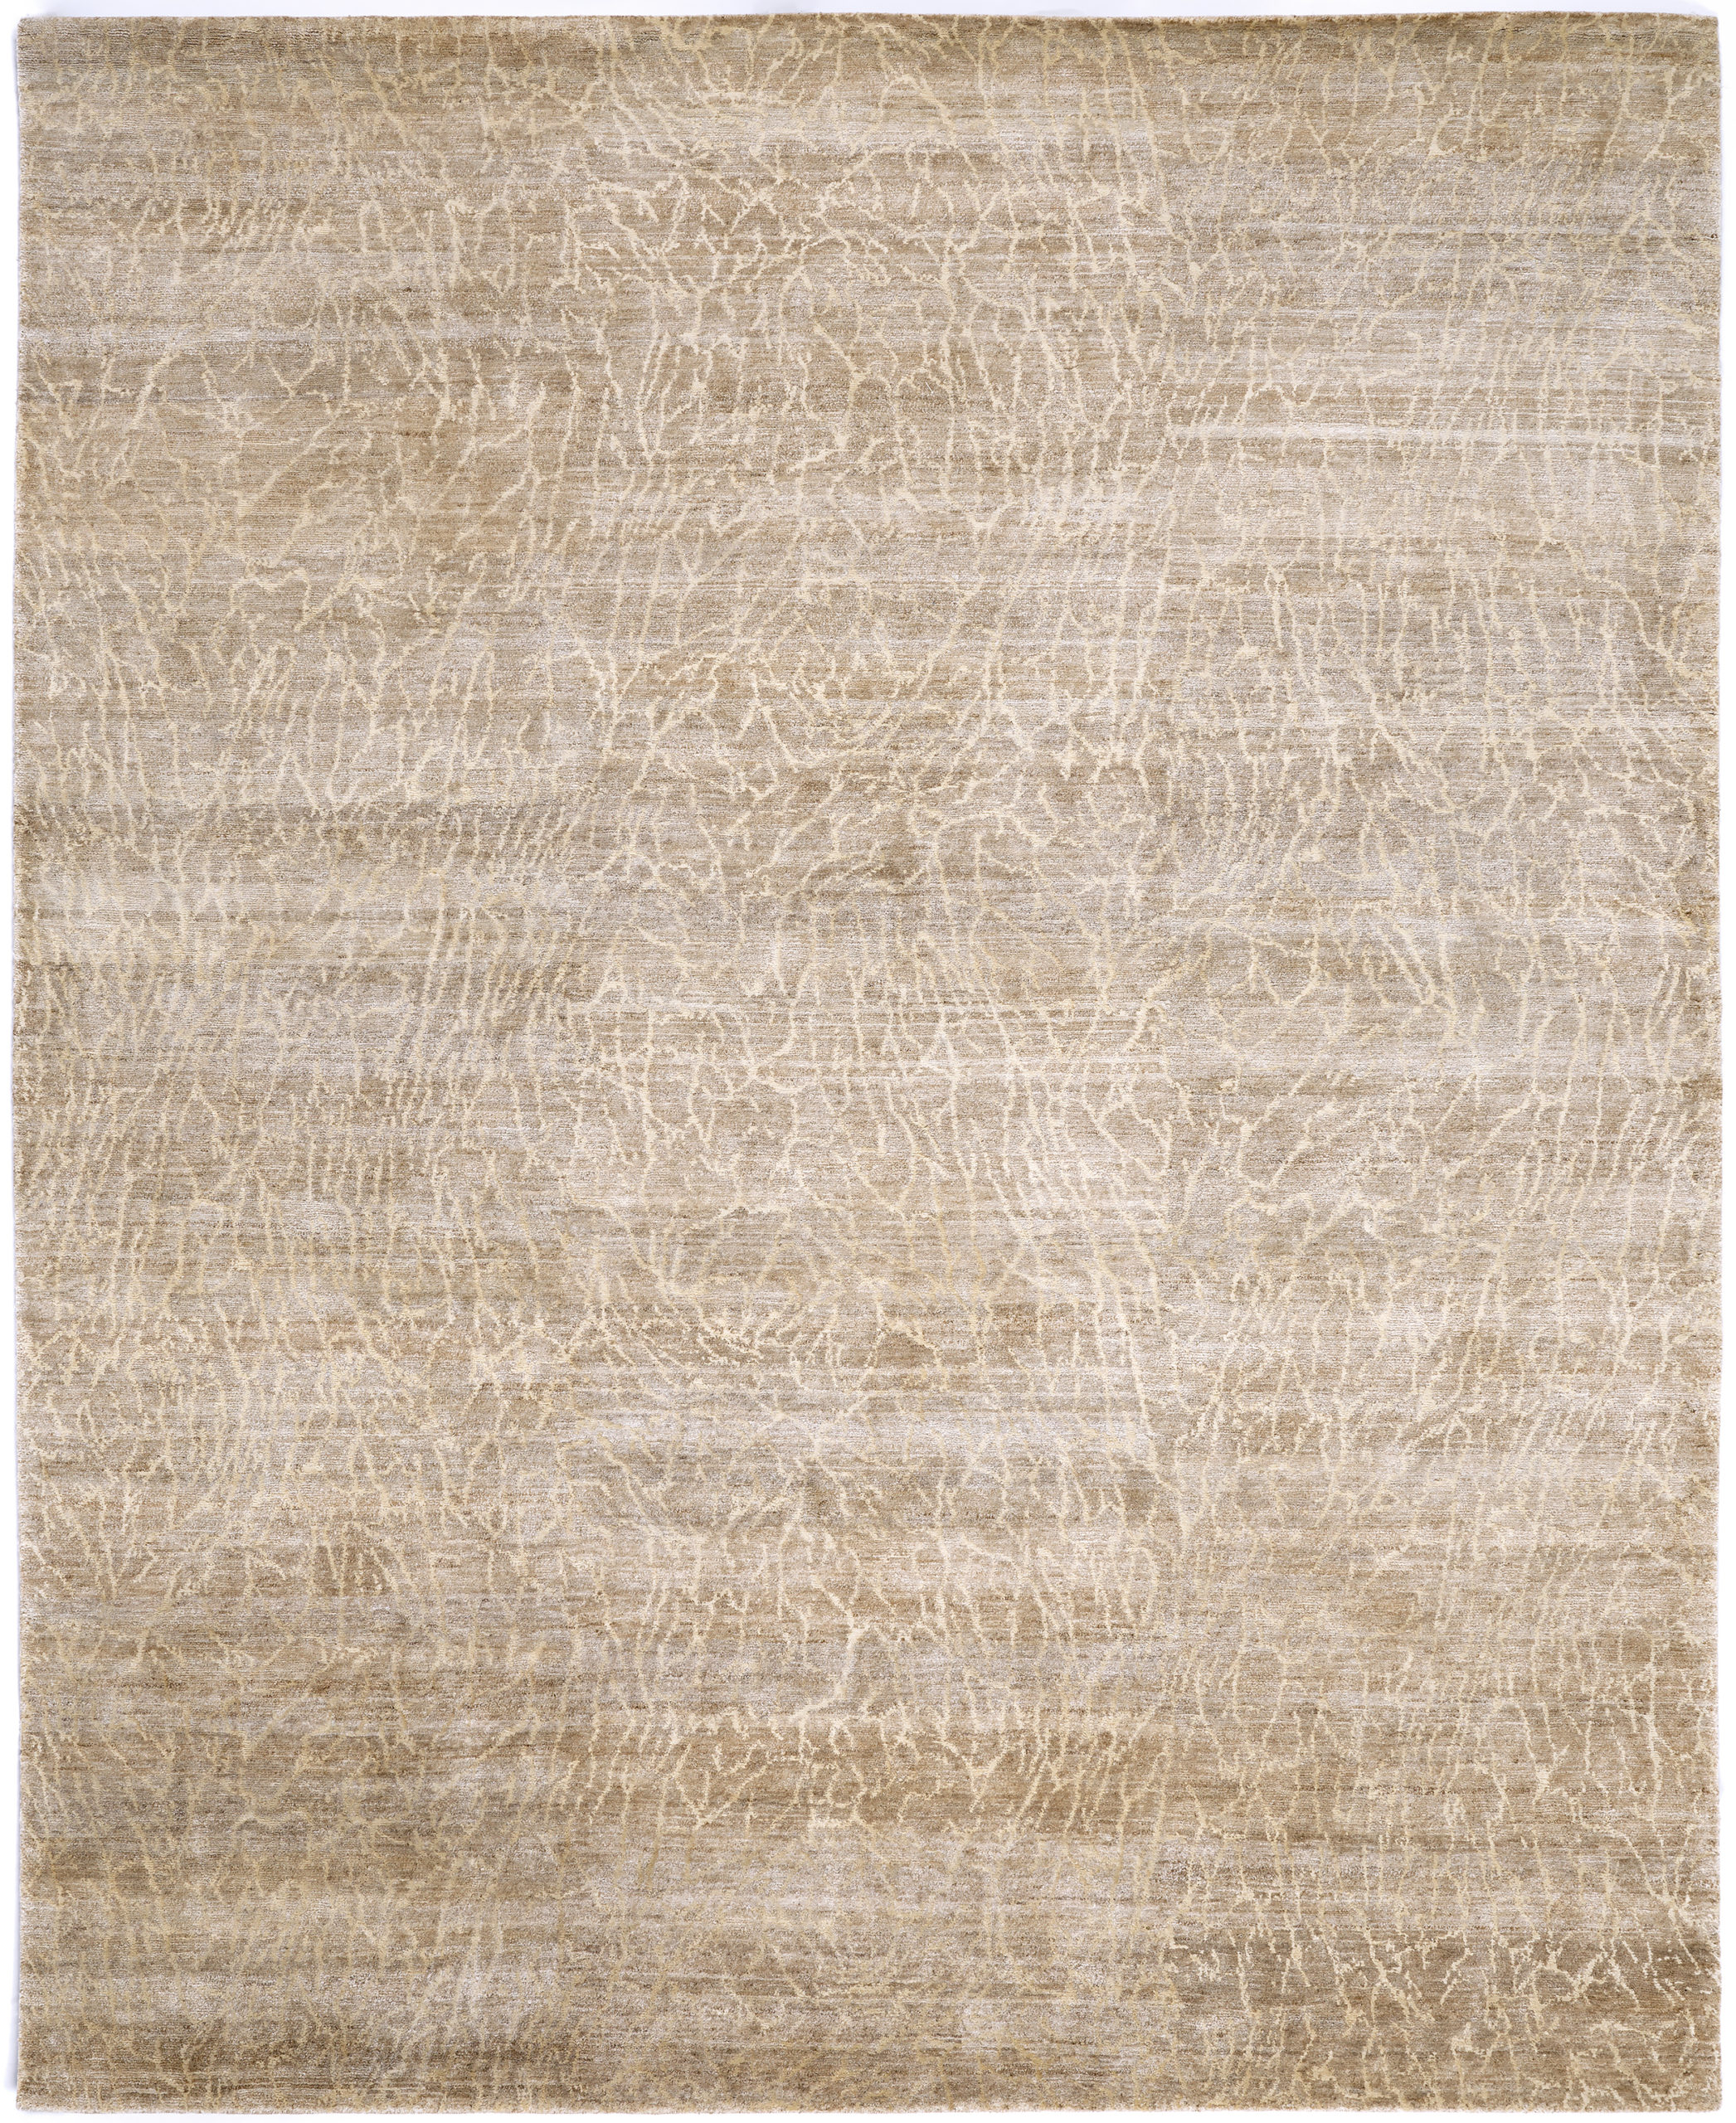 crosby_street_studios_products_CSS_CSS_Elements_Teton_RUG-scaled-1